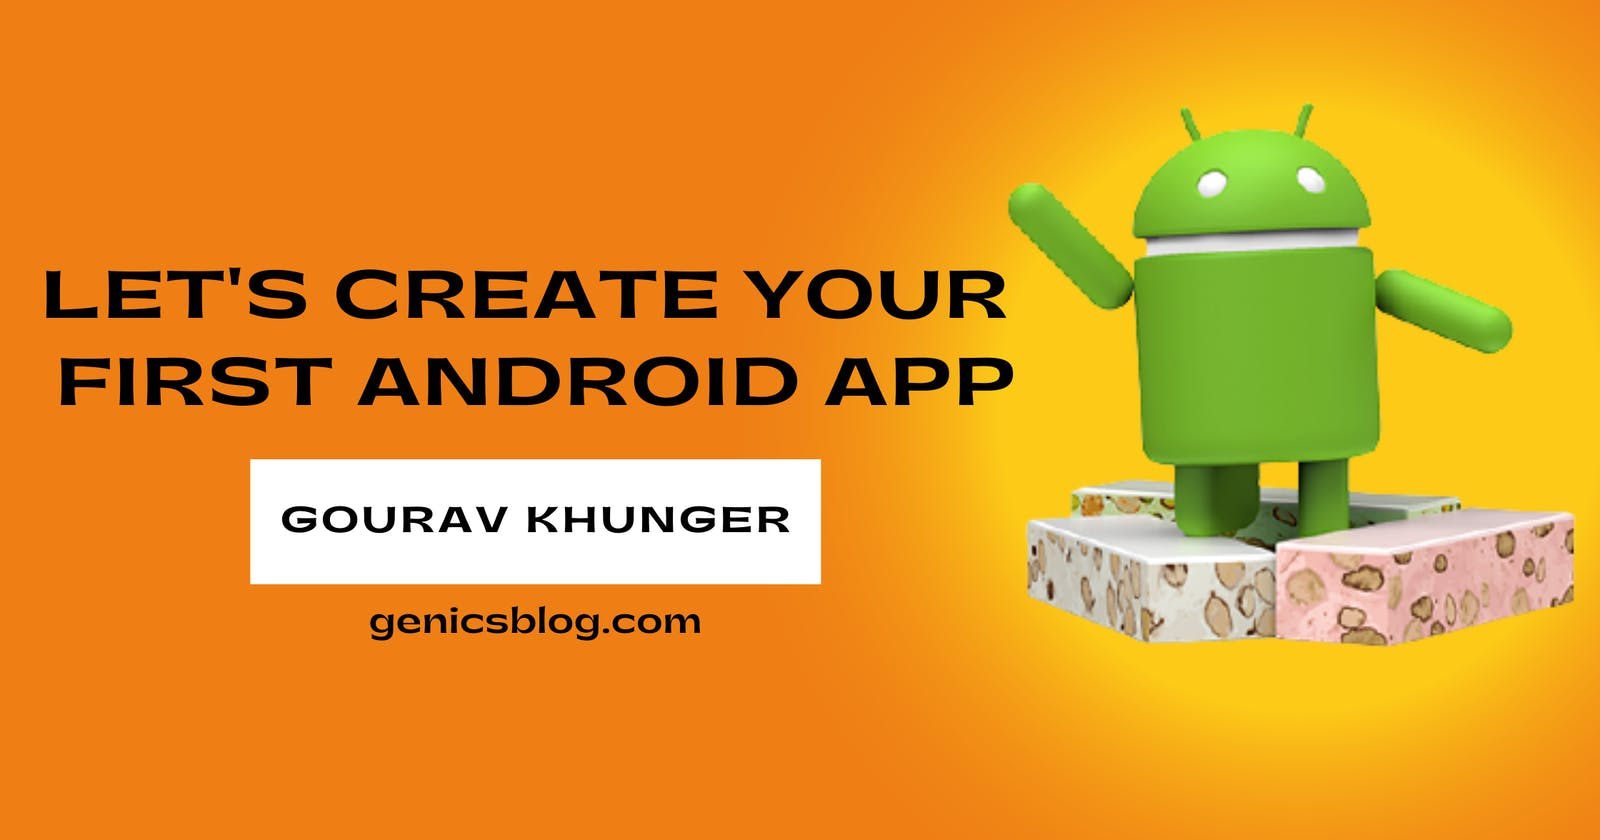 How to create your first Android app using Android Studio?